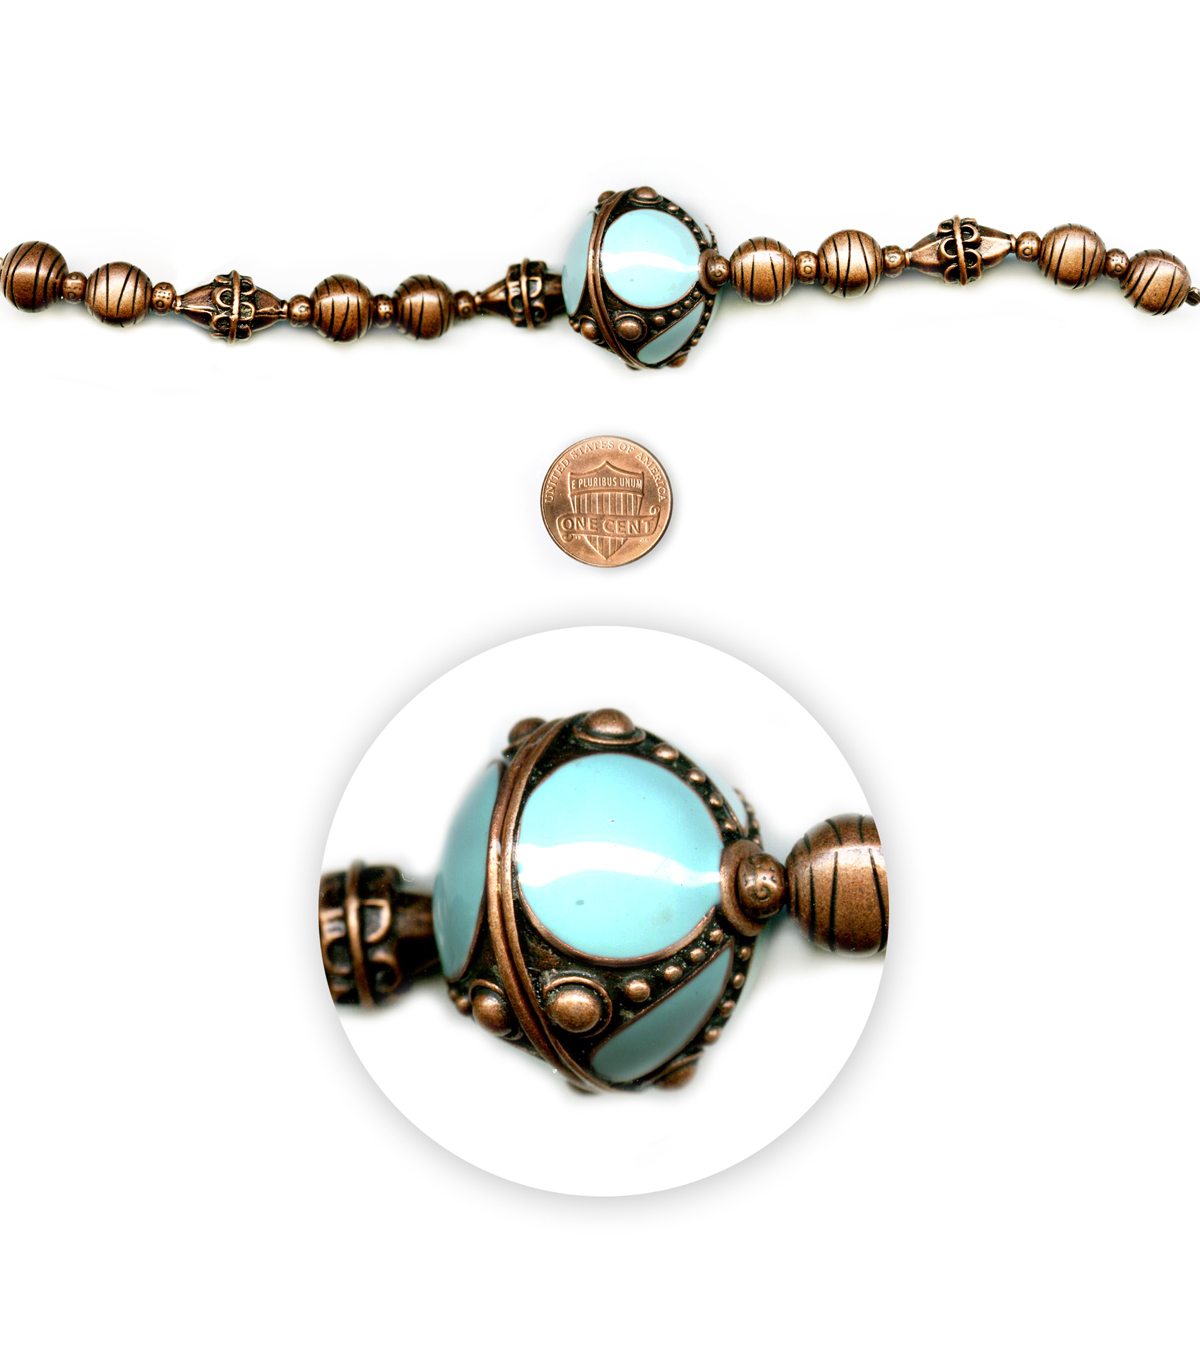 Blue Moon Beads 7\u0022 Strand, Copper Beads with Large Blue Enamel Focal